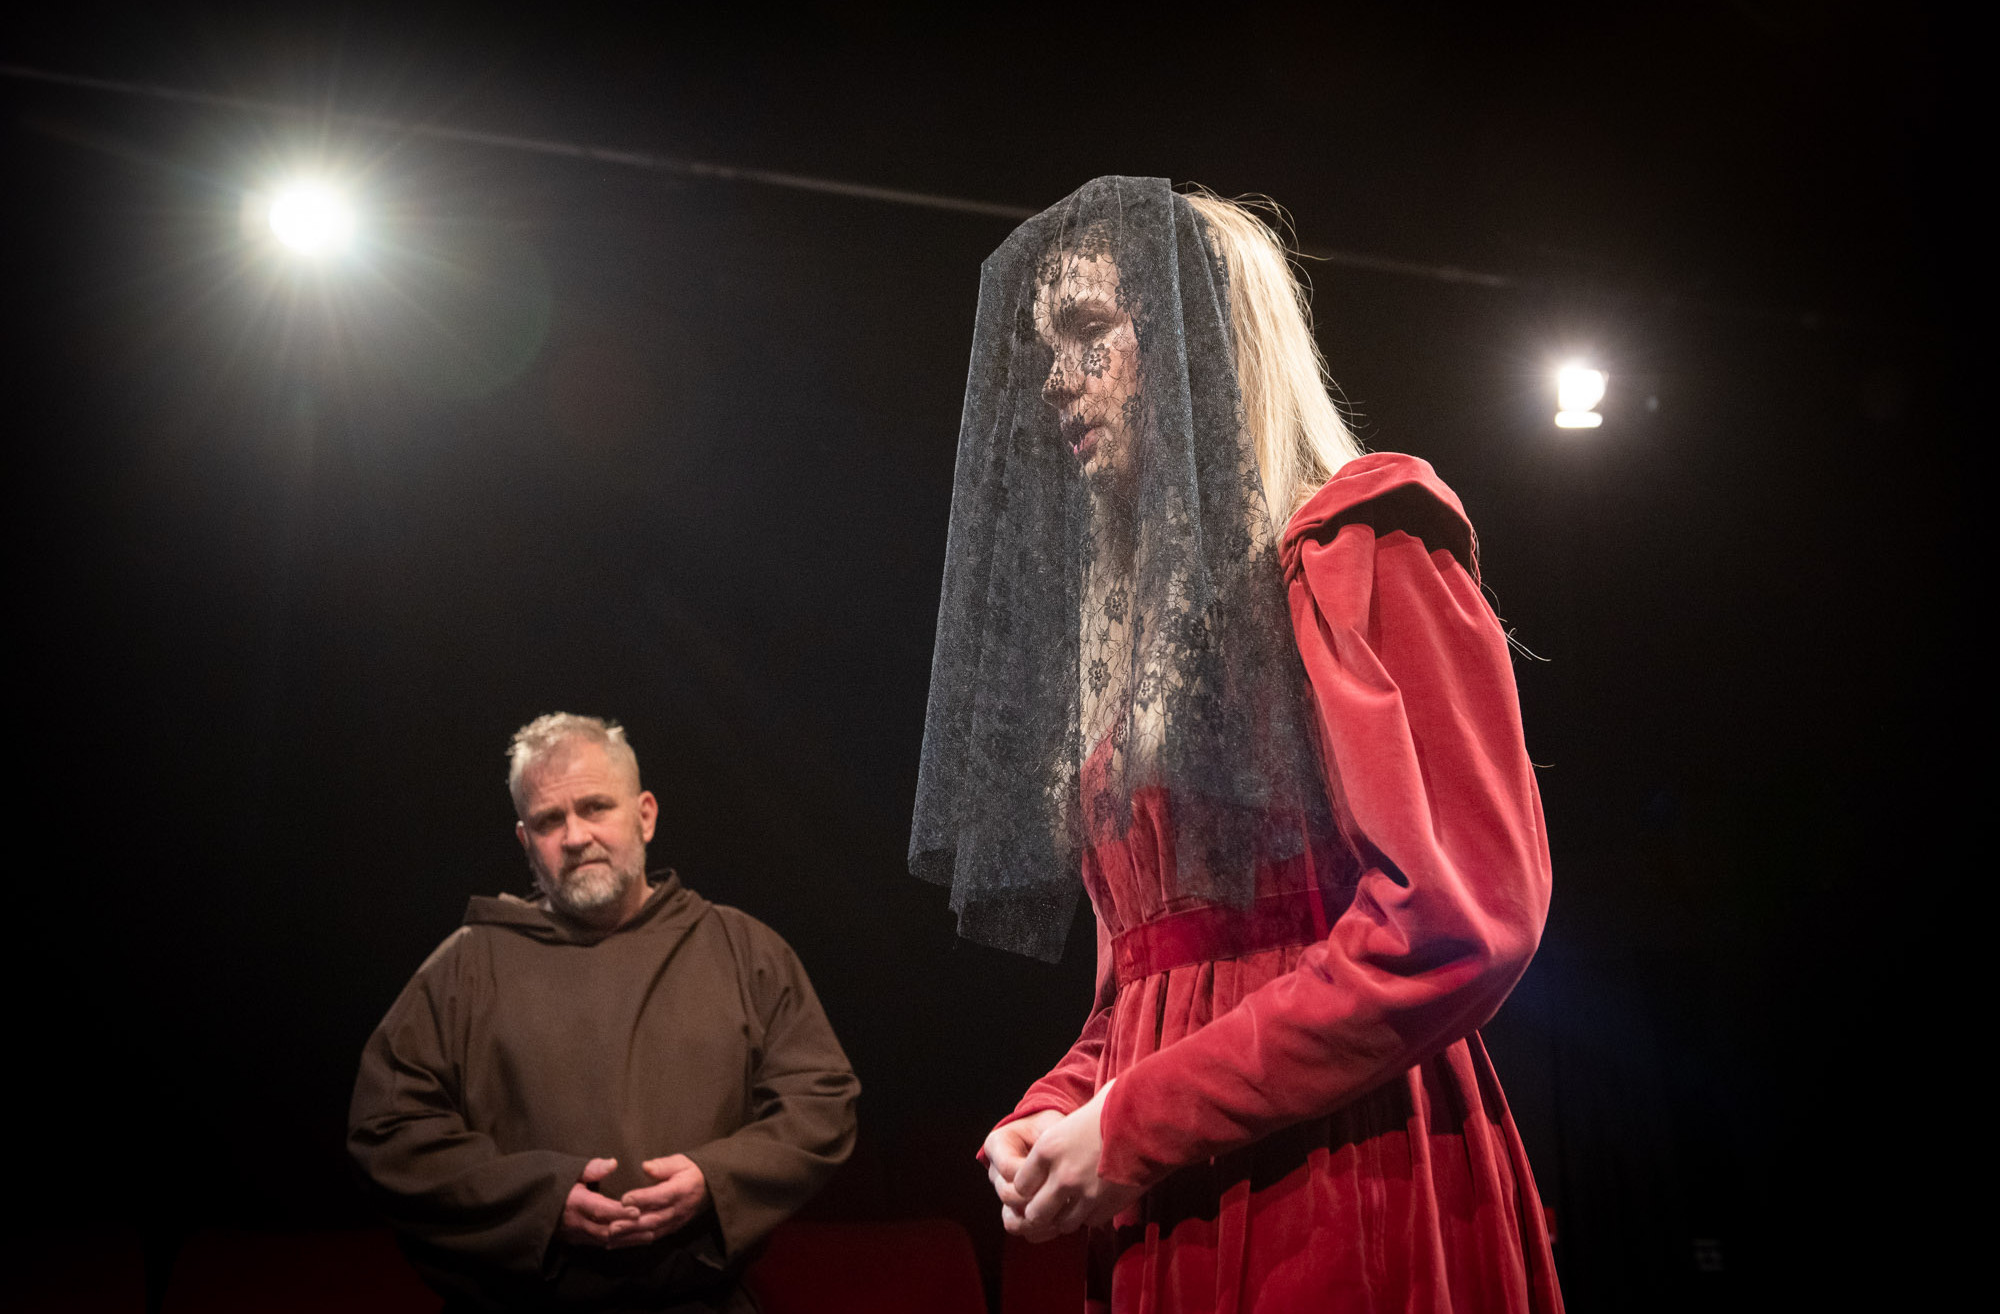 Bolton Little Theatre stage rehearsals of William Shakespeare play Measure for Measure featuring Andrew Gradwell as Friar and Rebecca Anderson as Marianna